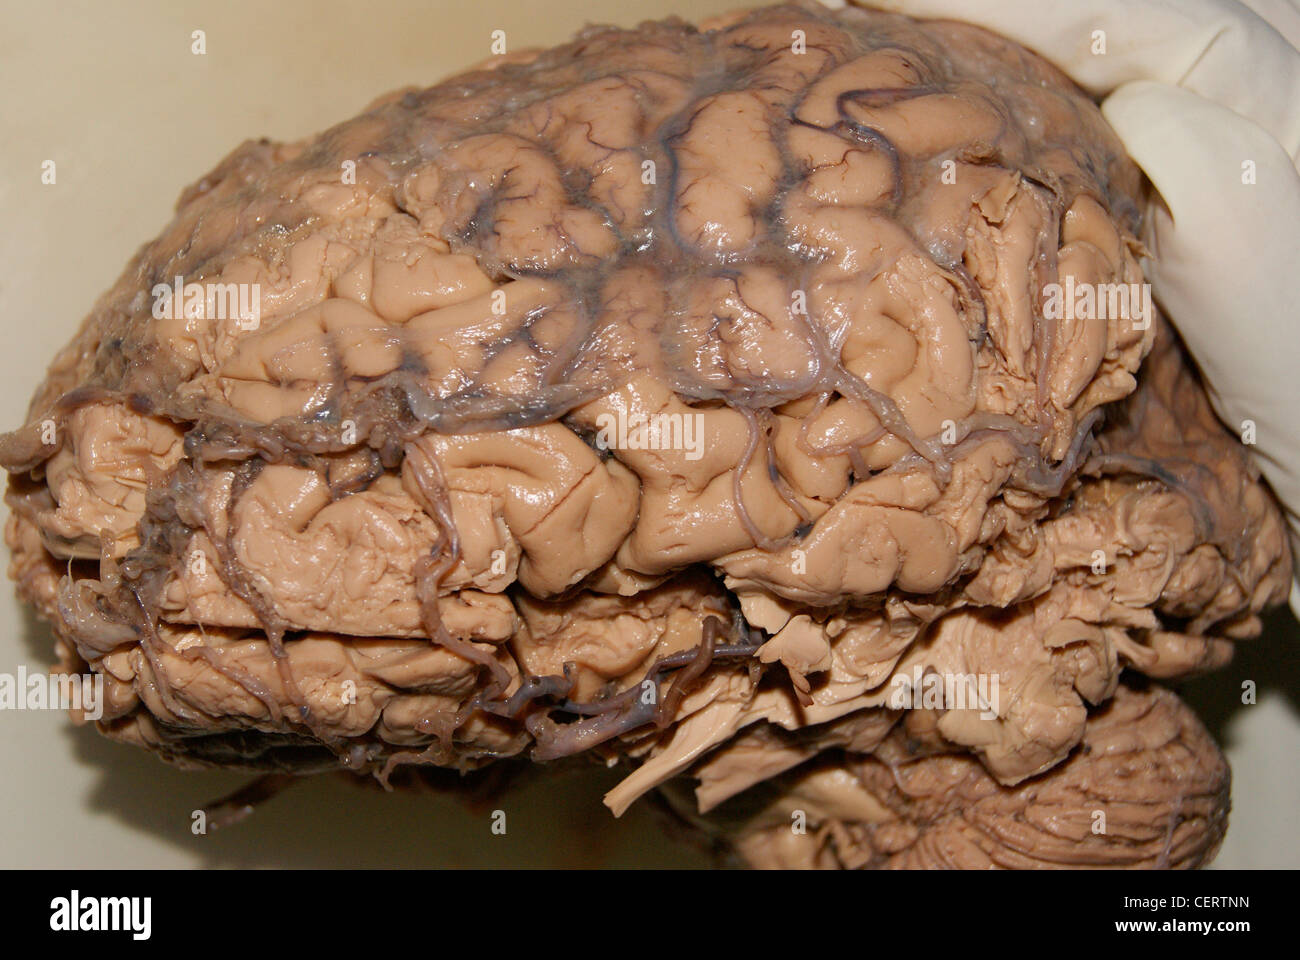 Brain bottom view stock photos brain bottom view stock images alamy original human brain specimen taken outside in a beaker and doctors hand with gloves on frame ccuart Gallery